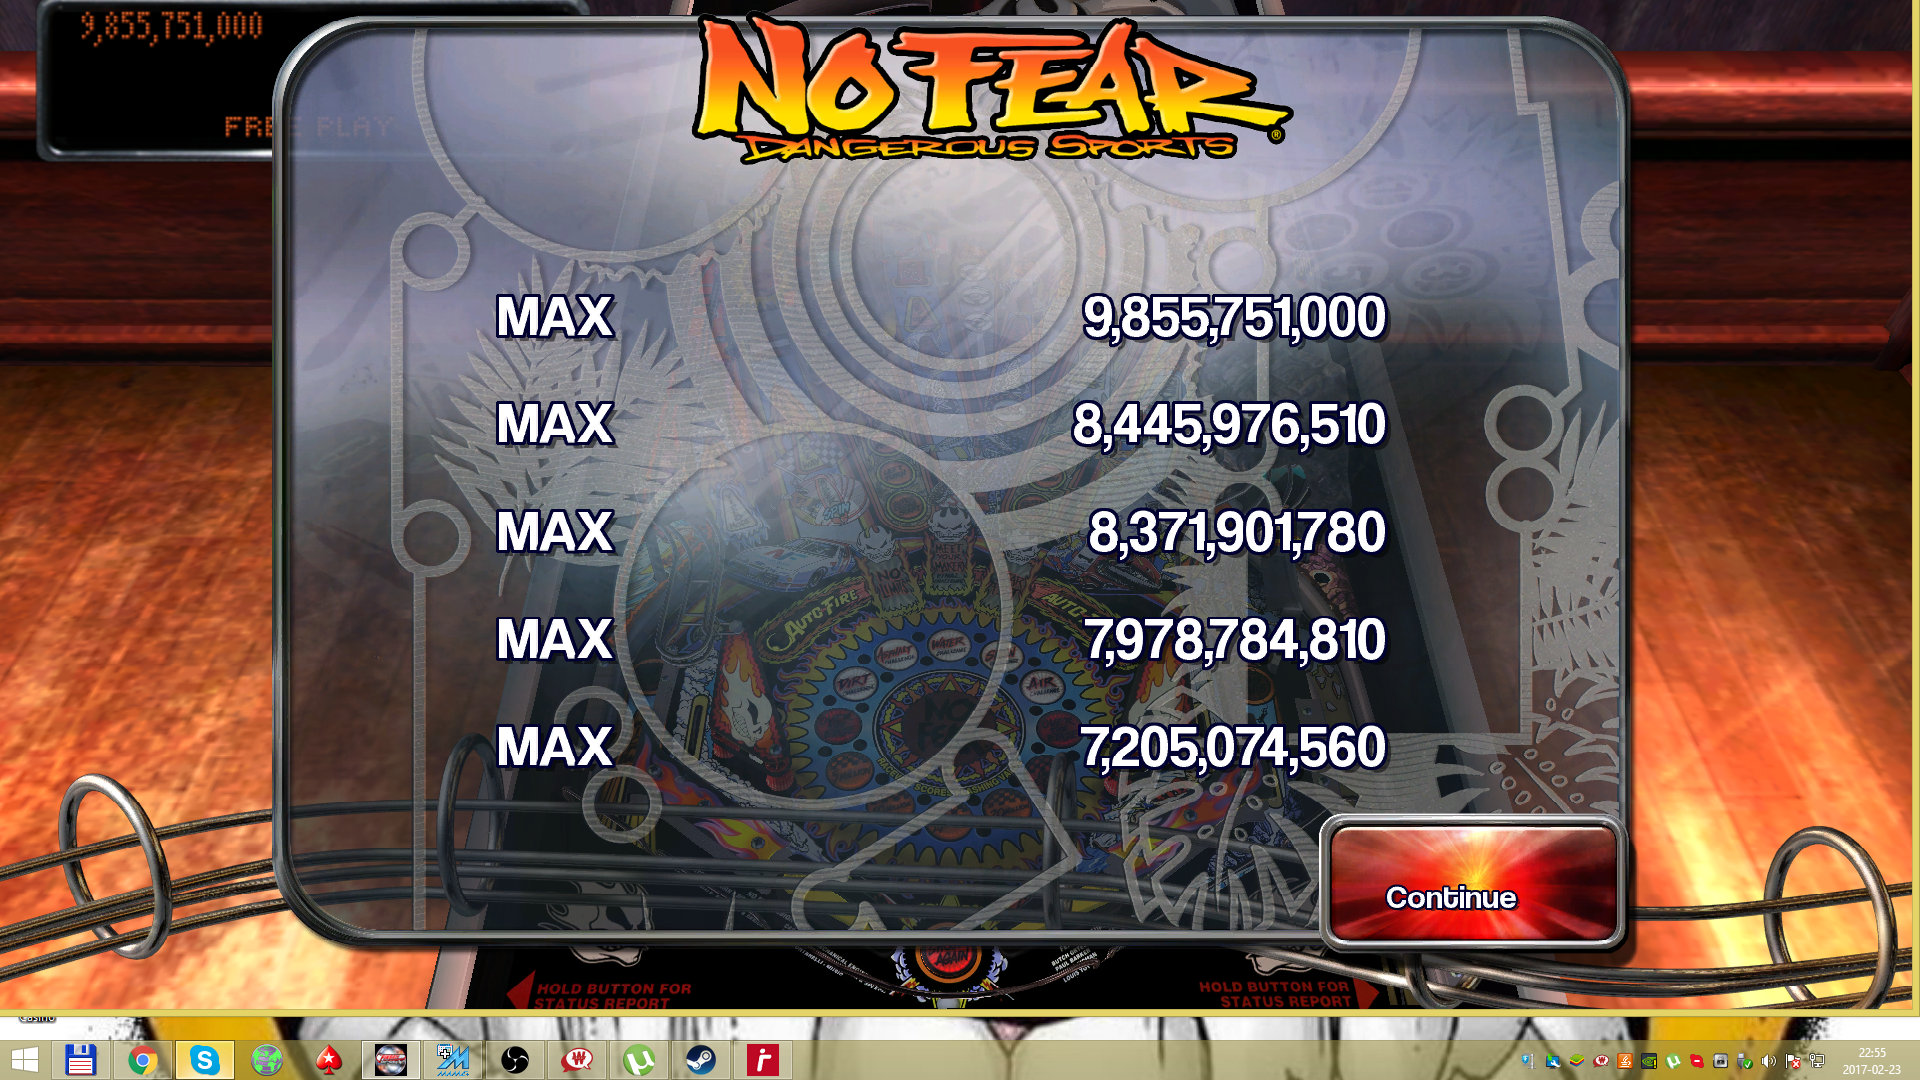 maxgreat: Pinball Arcade: No Fear: Dangerous Sports (PC) 9,855,751,000 points on 2017-02-23 16:03:24